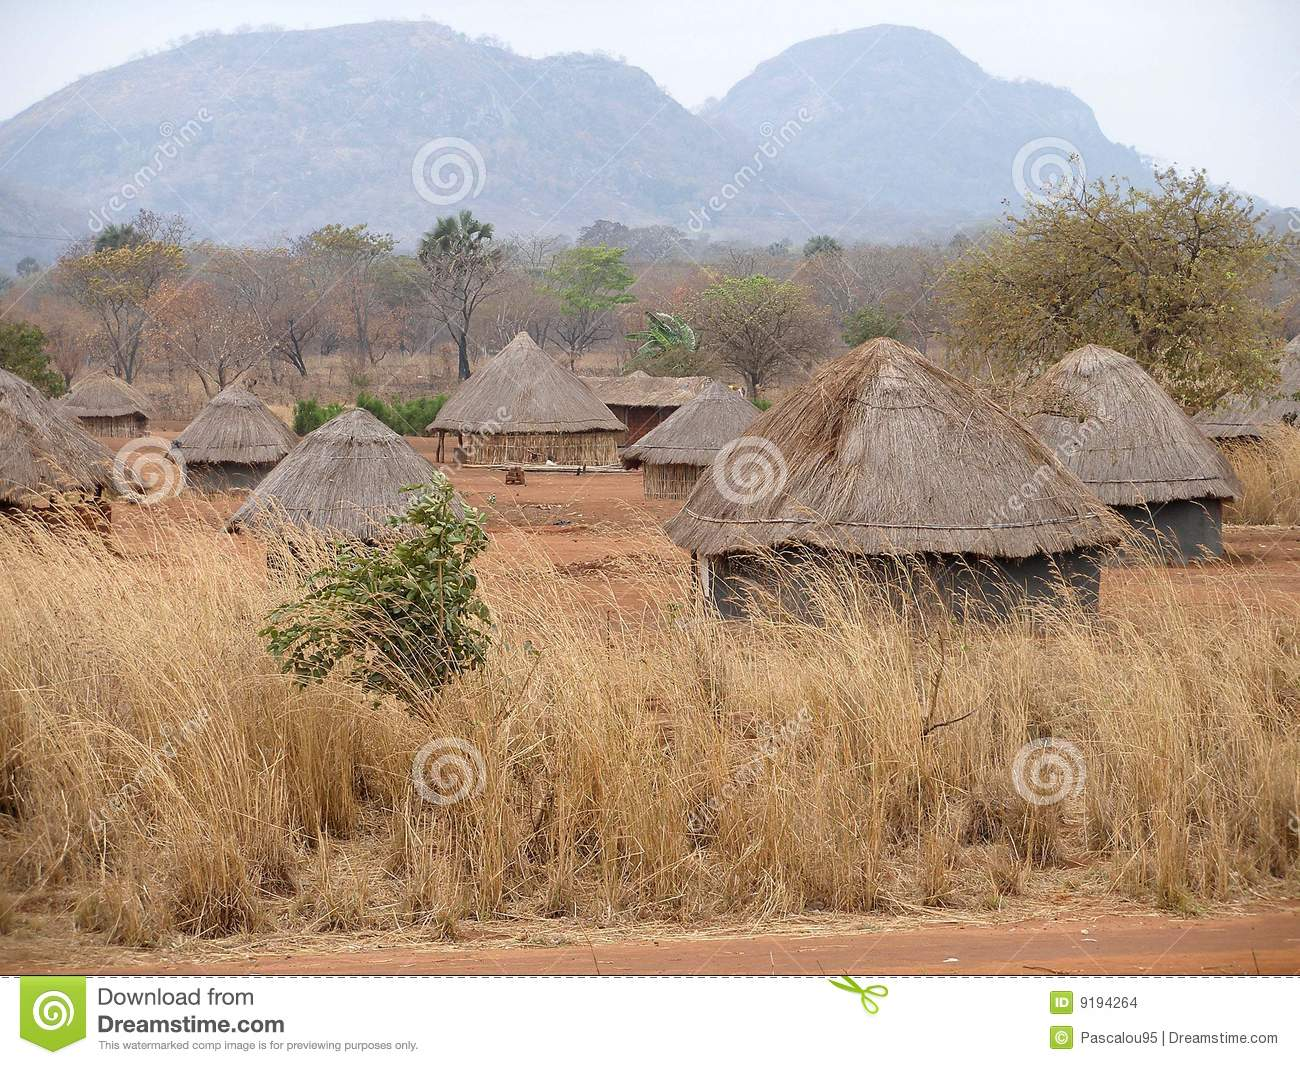 F >> African Village In Mozambique Stock Photo - Image: 9194264